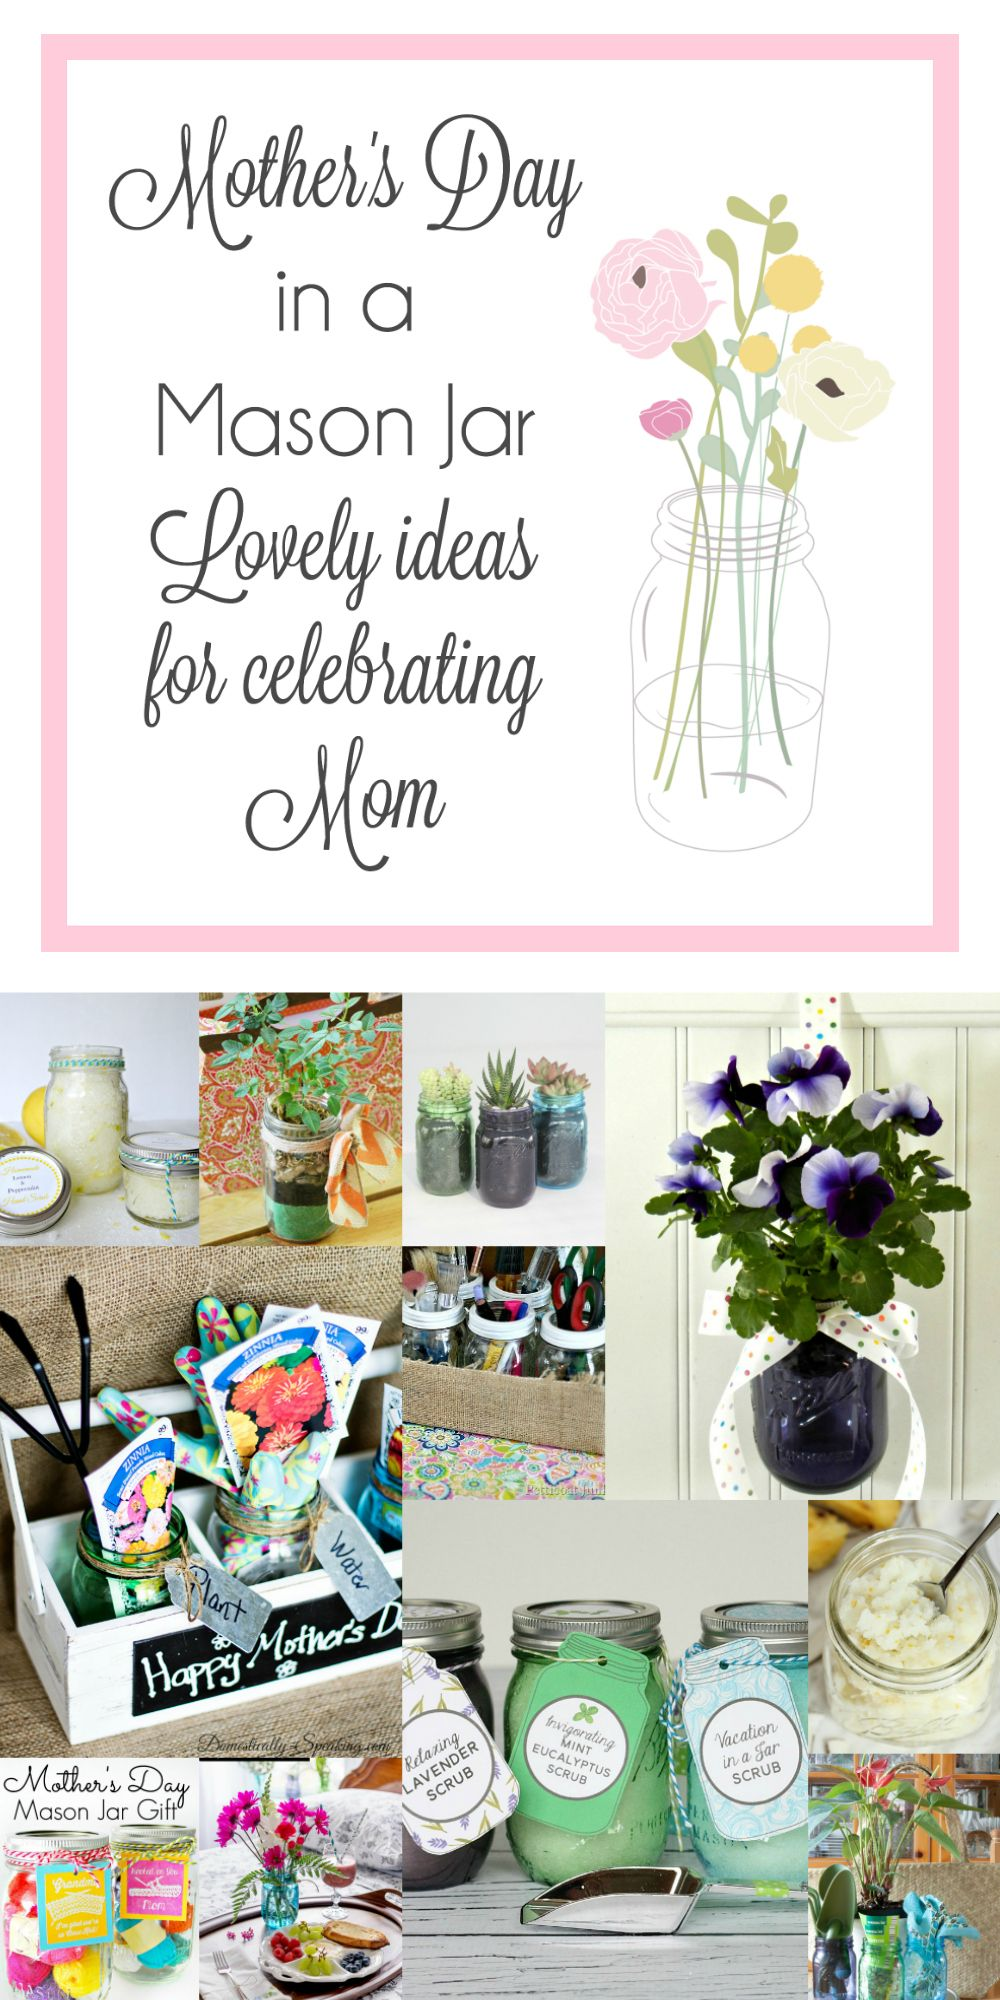 Mother's Day Gardening Gift with Mason Jars and a Giveaway